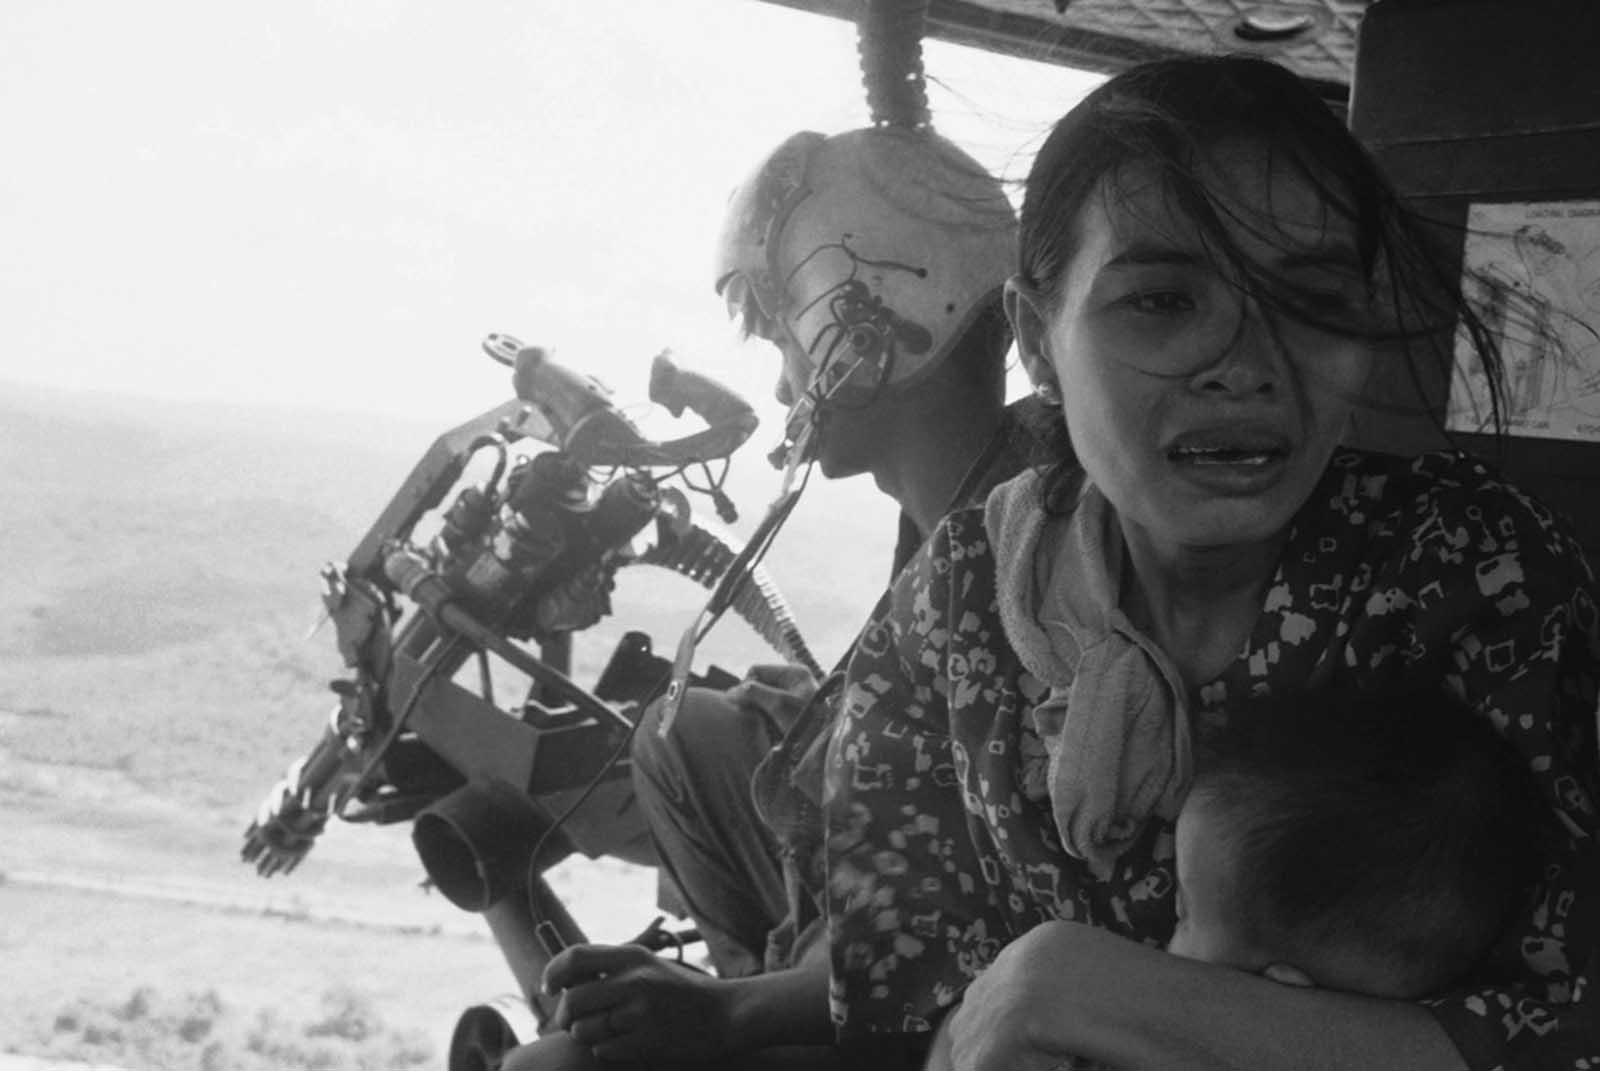 A refugee clutches her baby as a government helicopter gunship carries them away near Tuy Hoa, 235 miles northeast of Saigon on March 22, 1975. They were among thousands fleeing from recent Communist advances. With U.S. forces out of the country, North Vietnamese troops tested South Vietnamese defenses (and the willingness of the U.S. to return to the fight) starting in 1974, and began capturing territory.